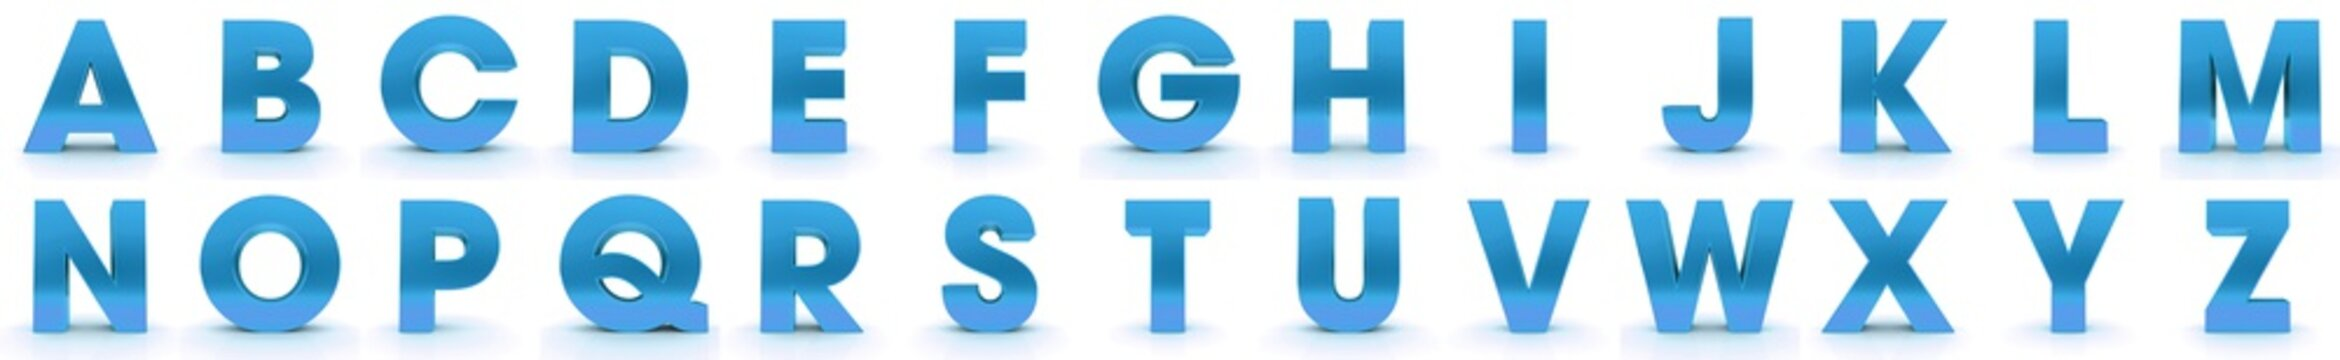 letters 3d blue alphabet capital characters text signs